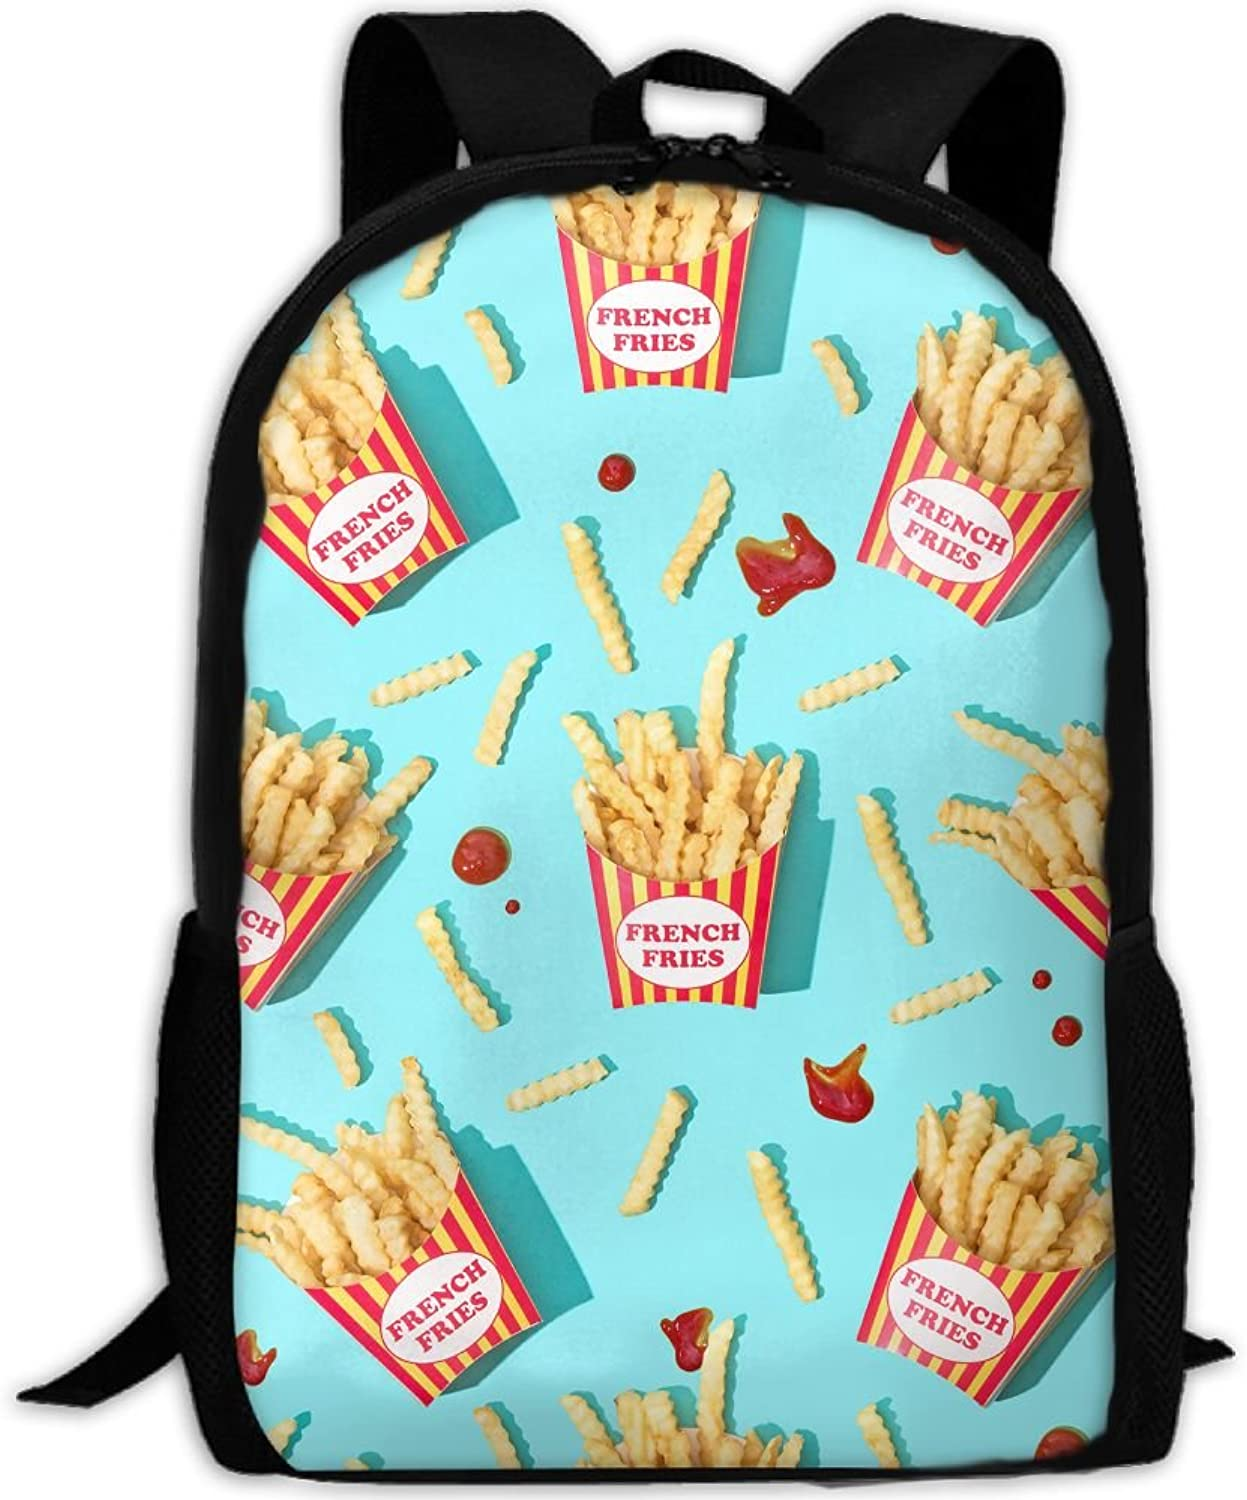 Adult Backpack Ketchup French Fries College Daypack Oxford Bag Unisex Business Travel Sports Bag with Adjustable Strap